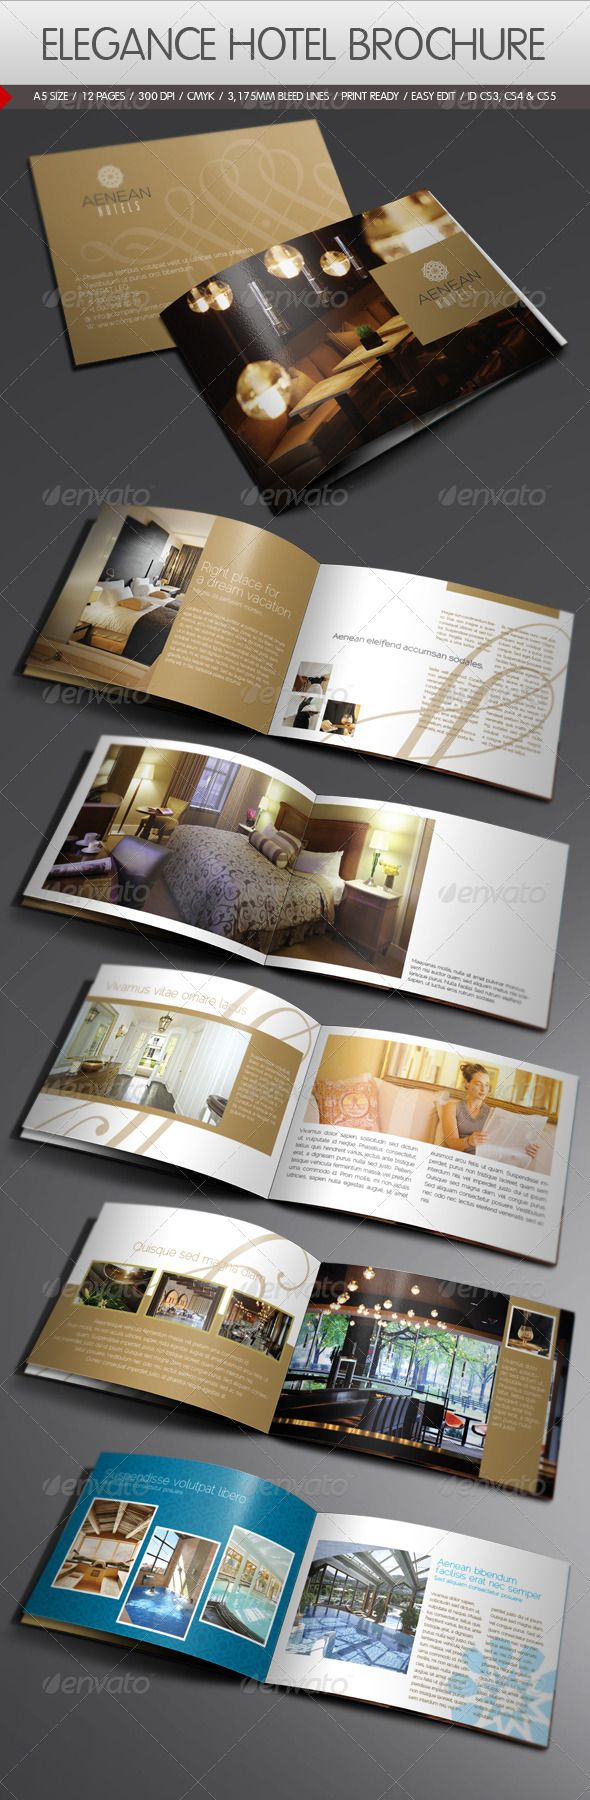 hotel brochure template - elegance hotel brochure a well print and texts